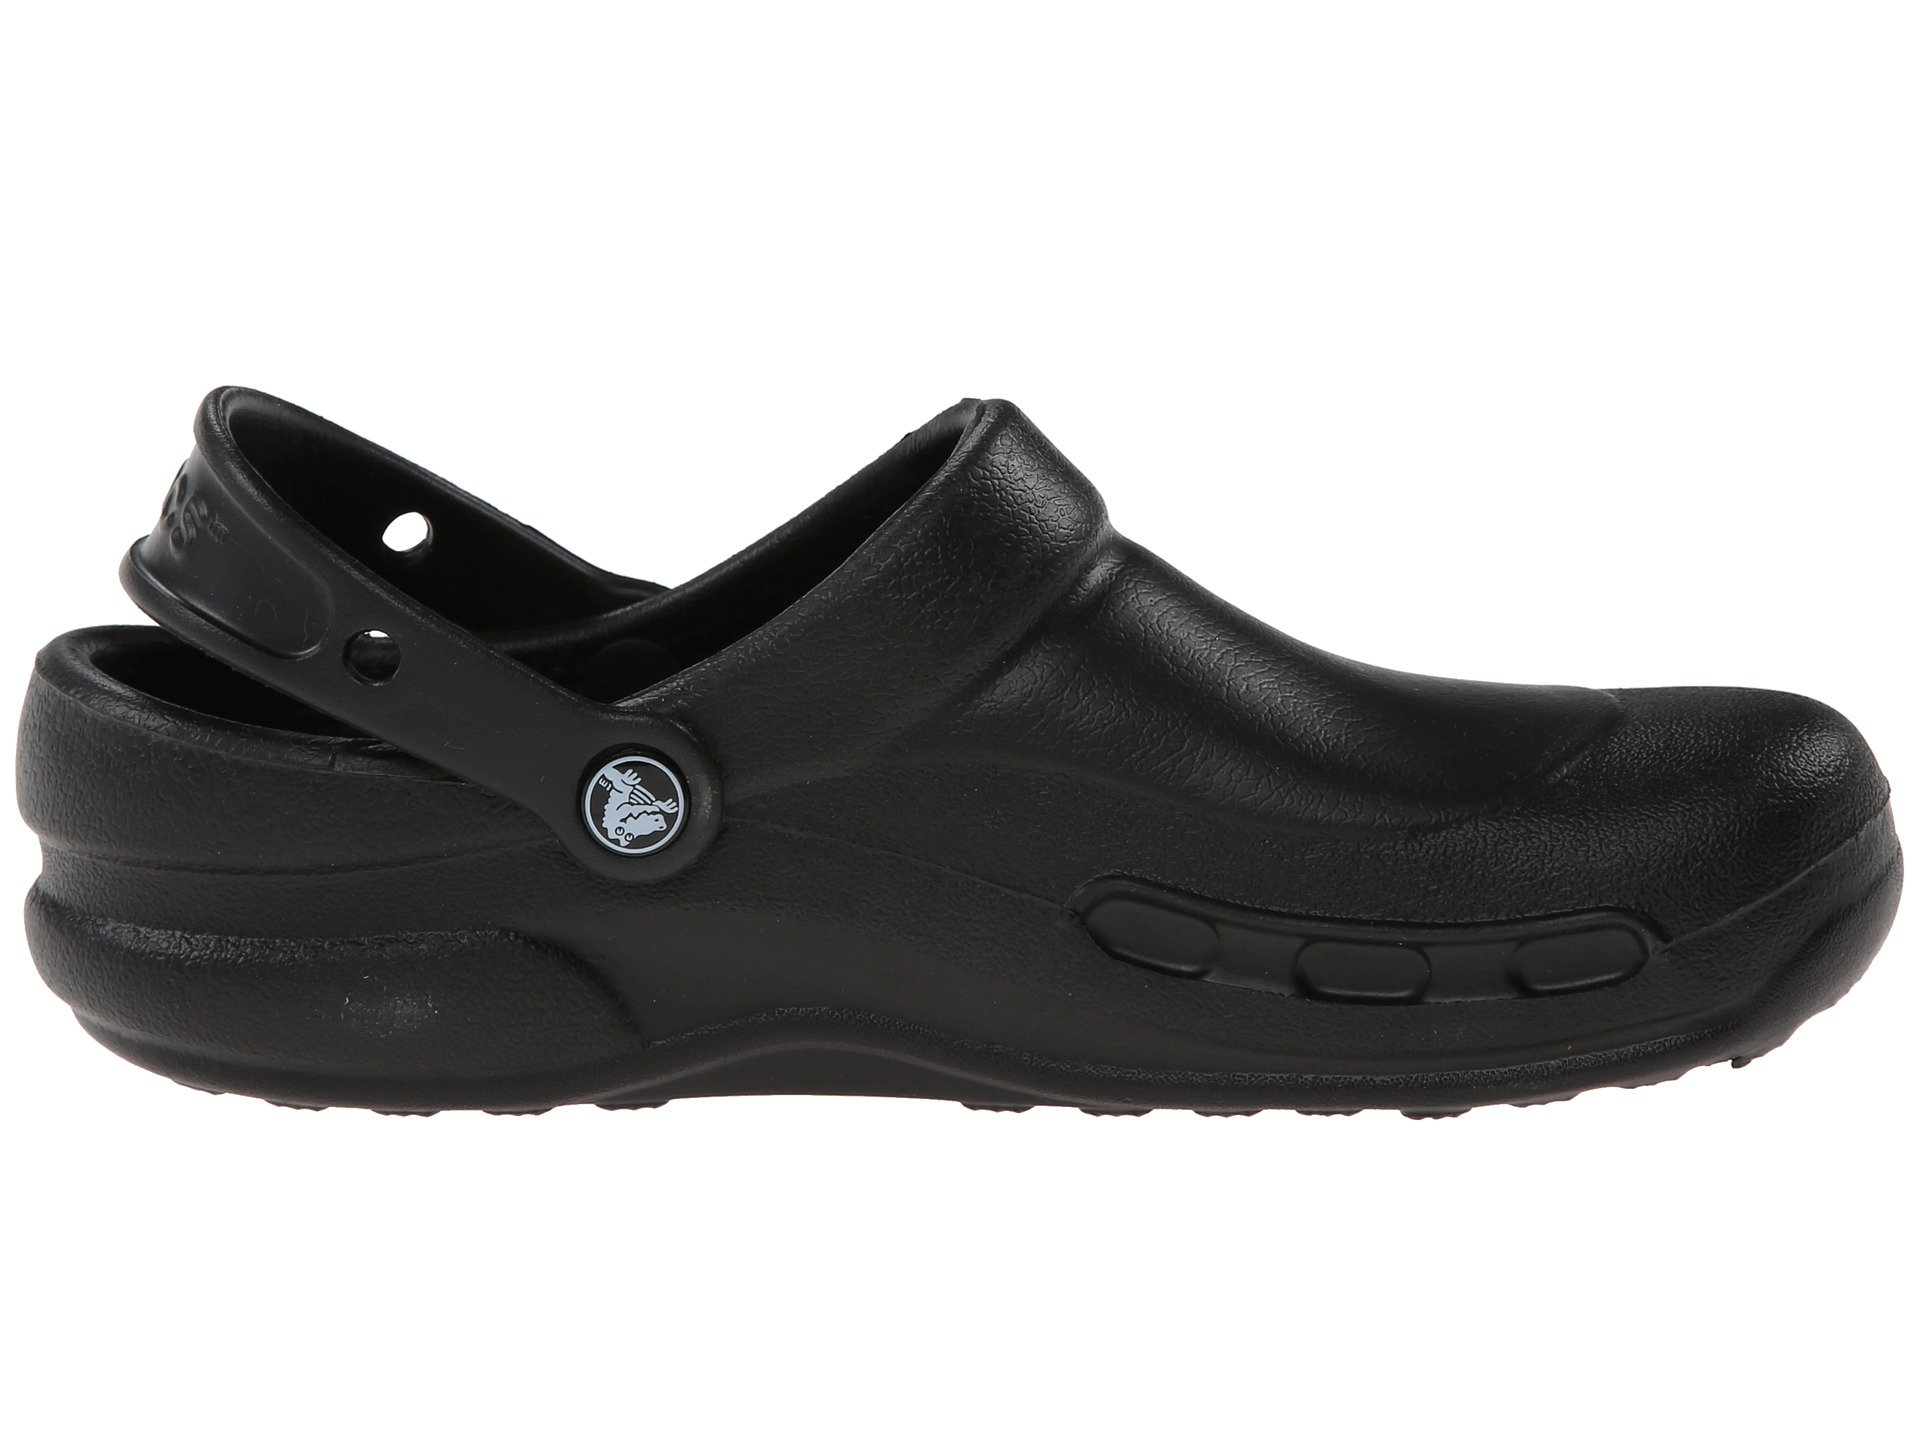 Where to Buy Crocs | Crocs Specialist | Where Is The Nearest Crocs Store